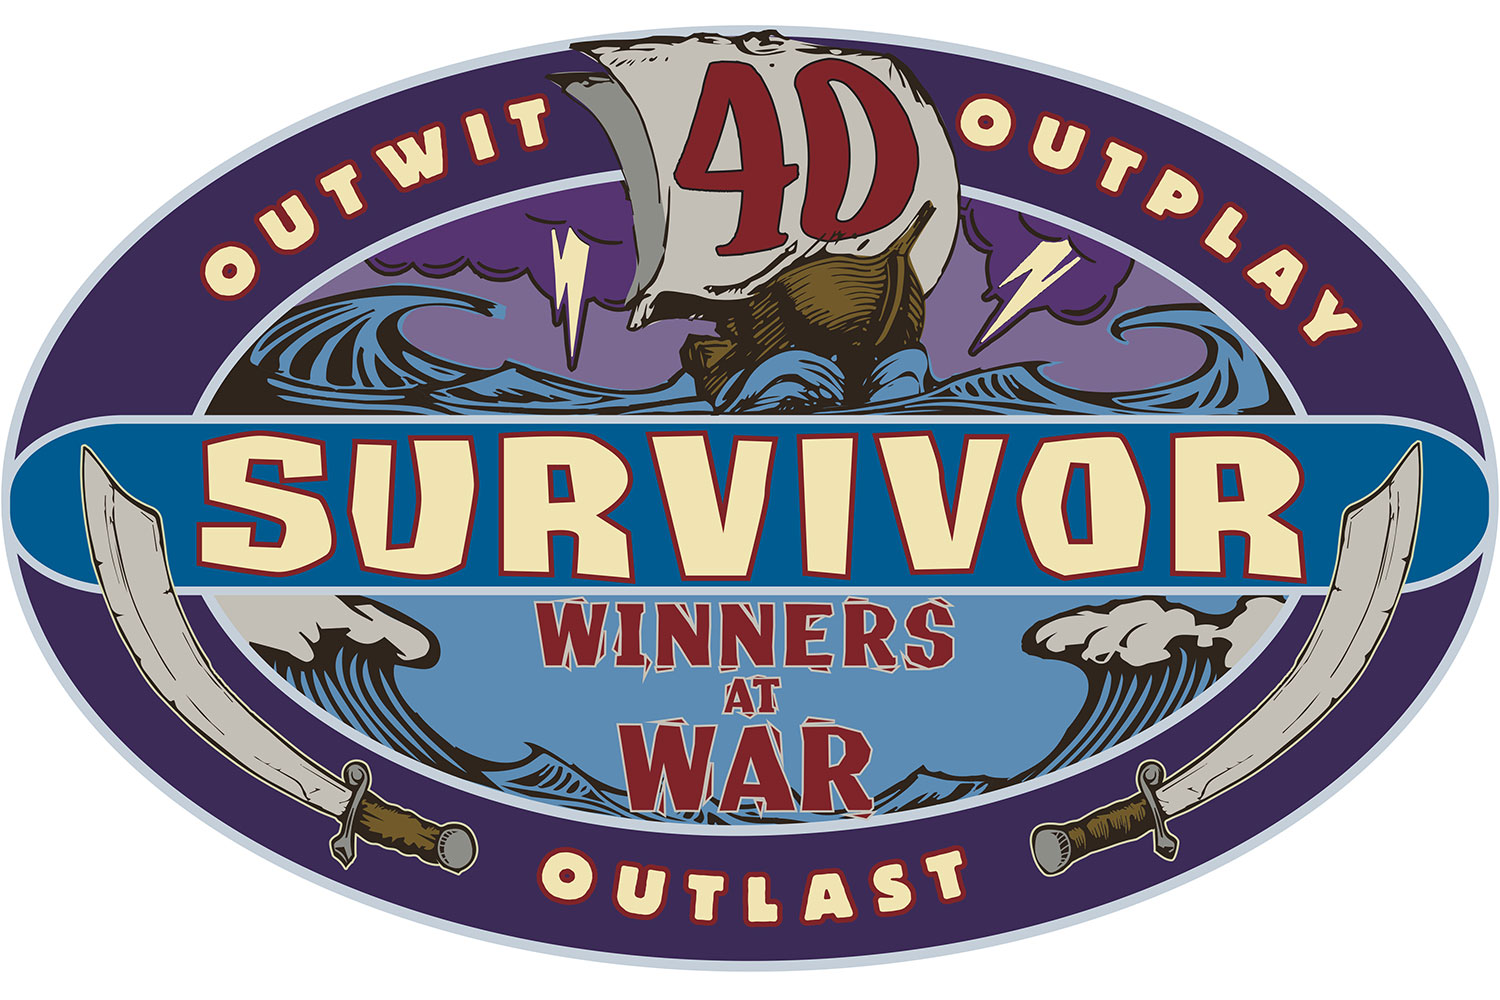 Survivors Winners at War logo